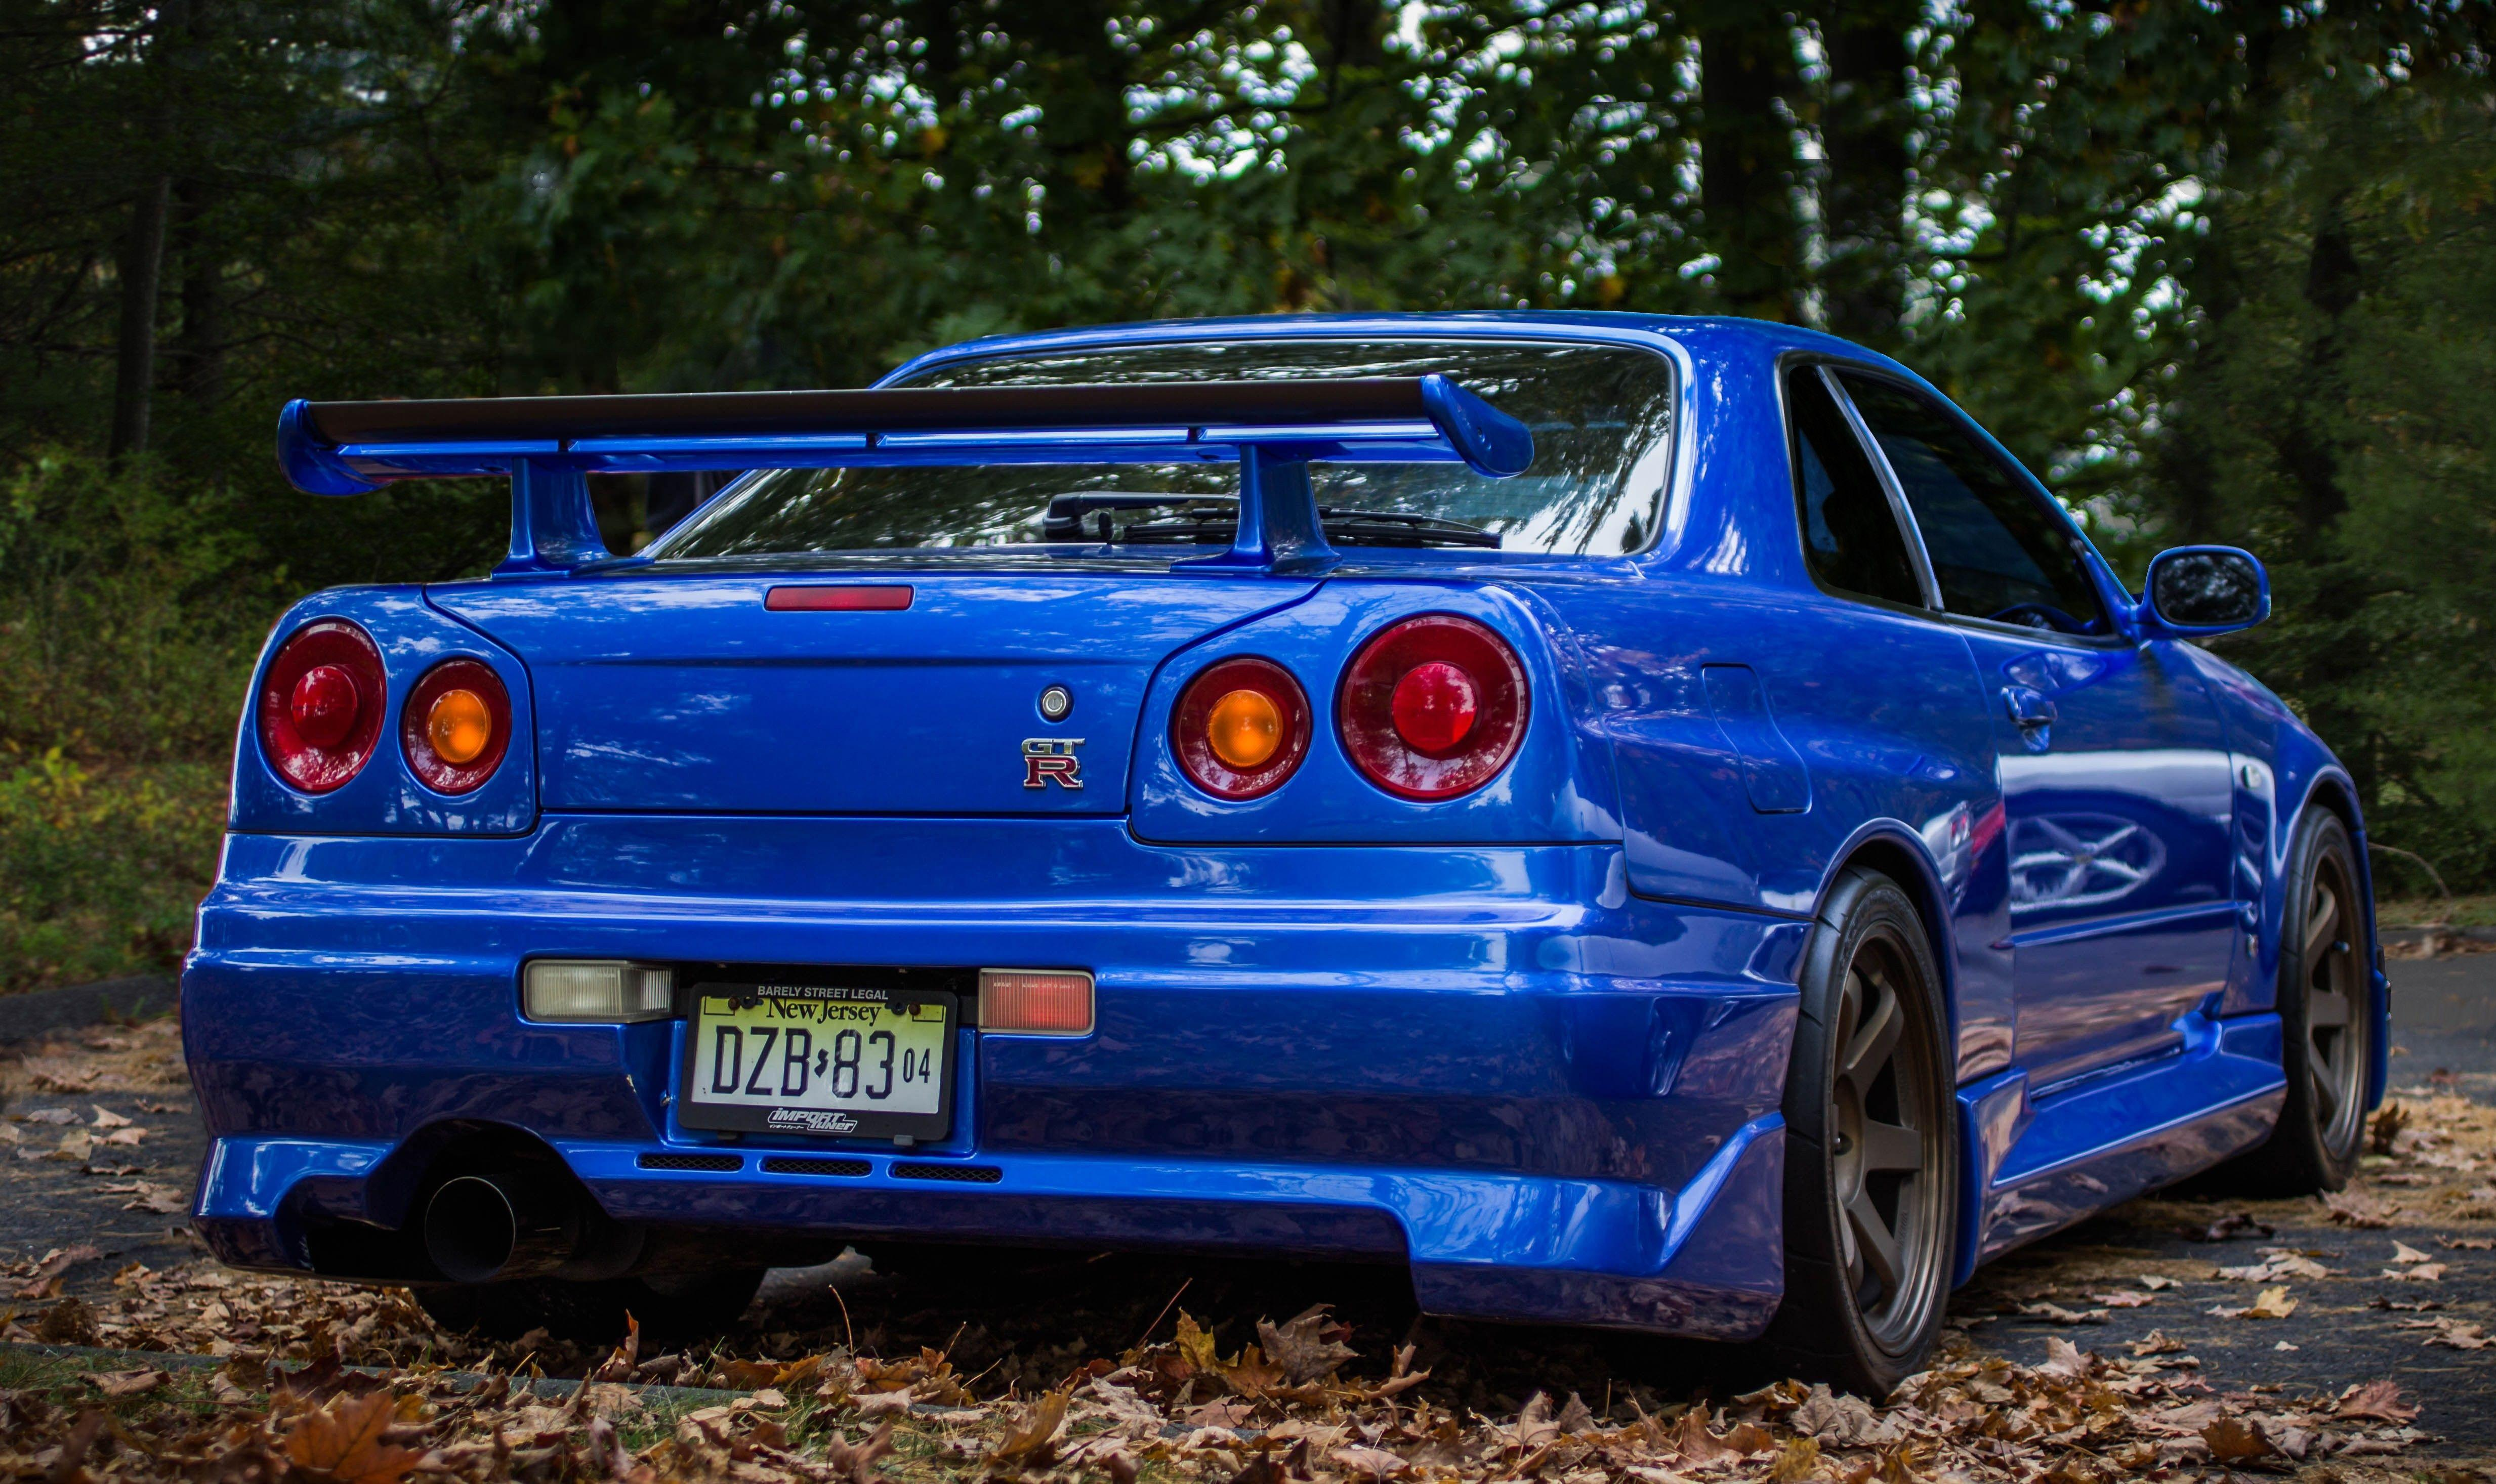 2 Nissan Skyline GT-R R34 HD Wallpapers | Backgrounds - Wallpaper ...